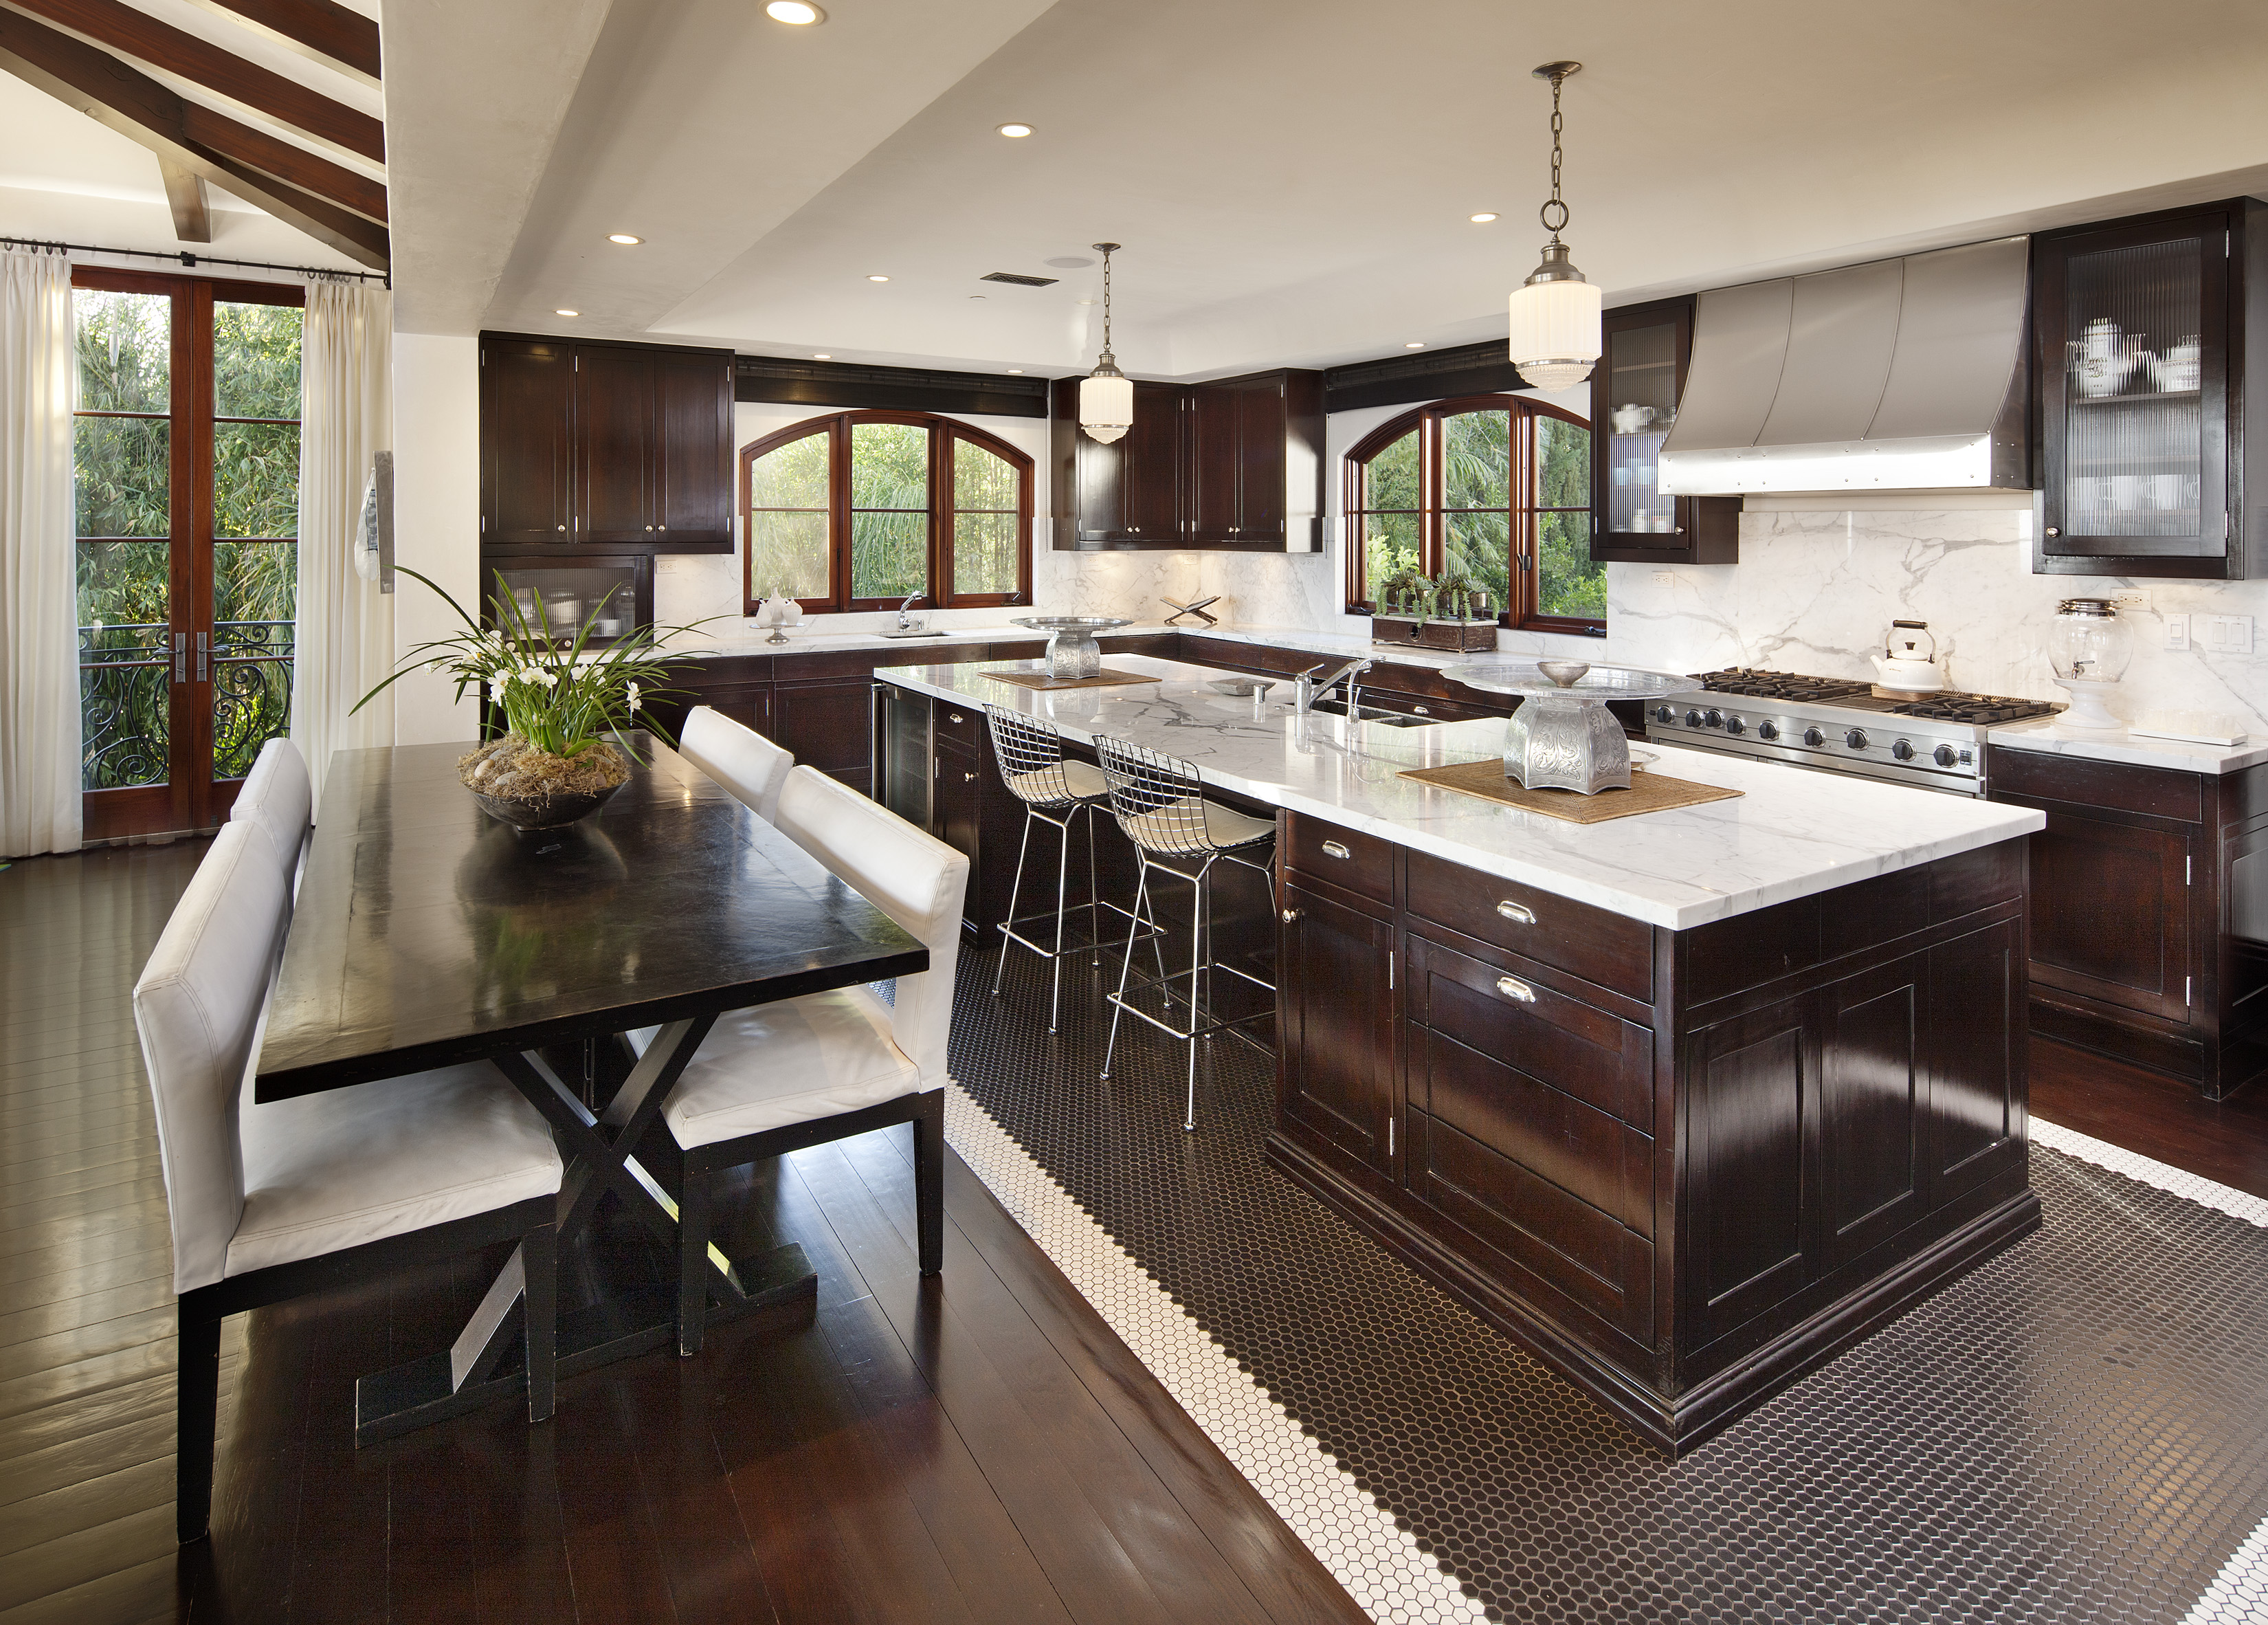 Beautiful kitchens eat your heart out part two montecito real estate - Designs of kitchen ...